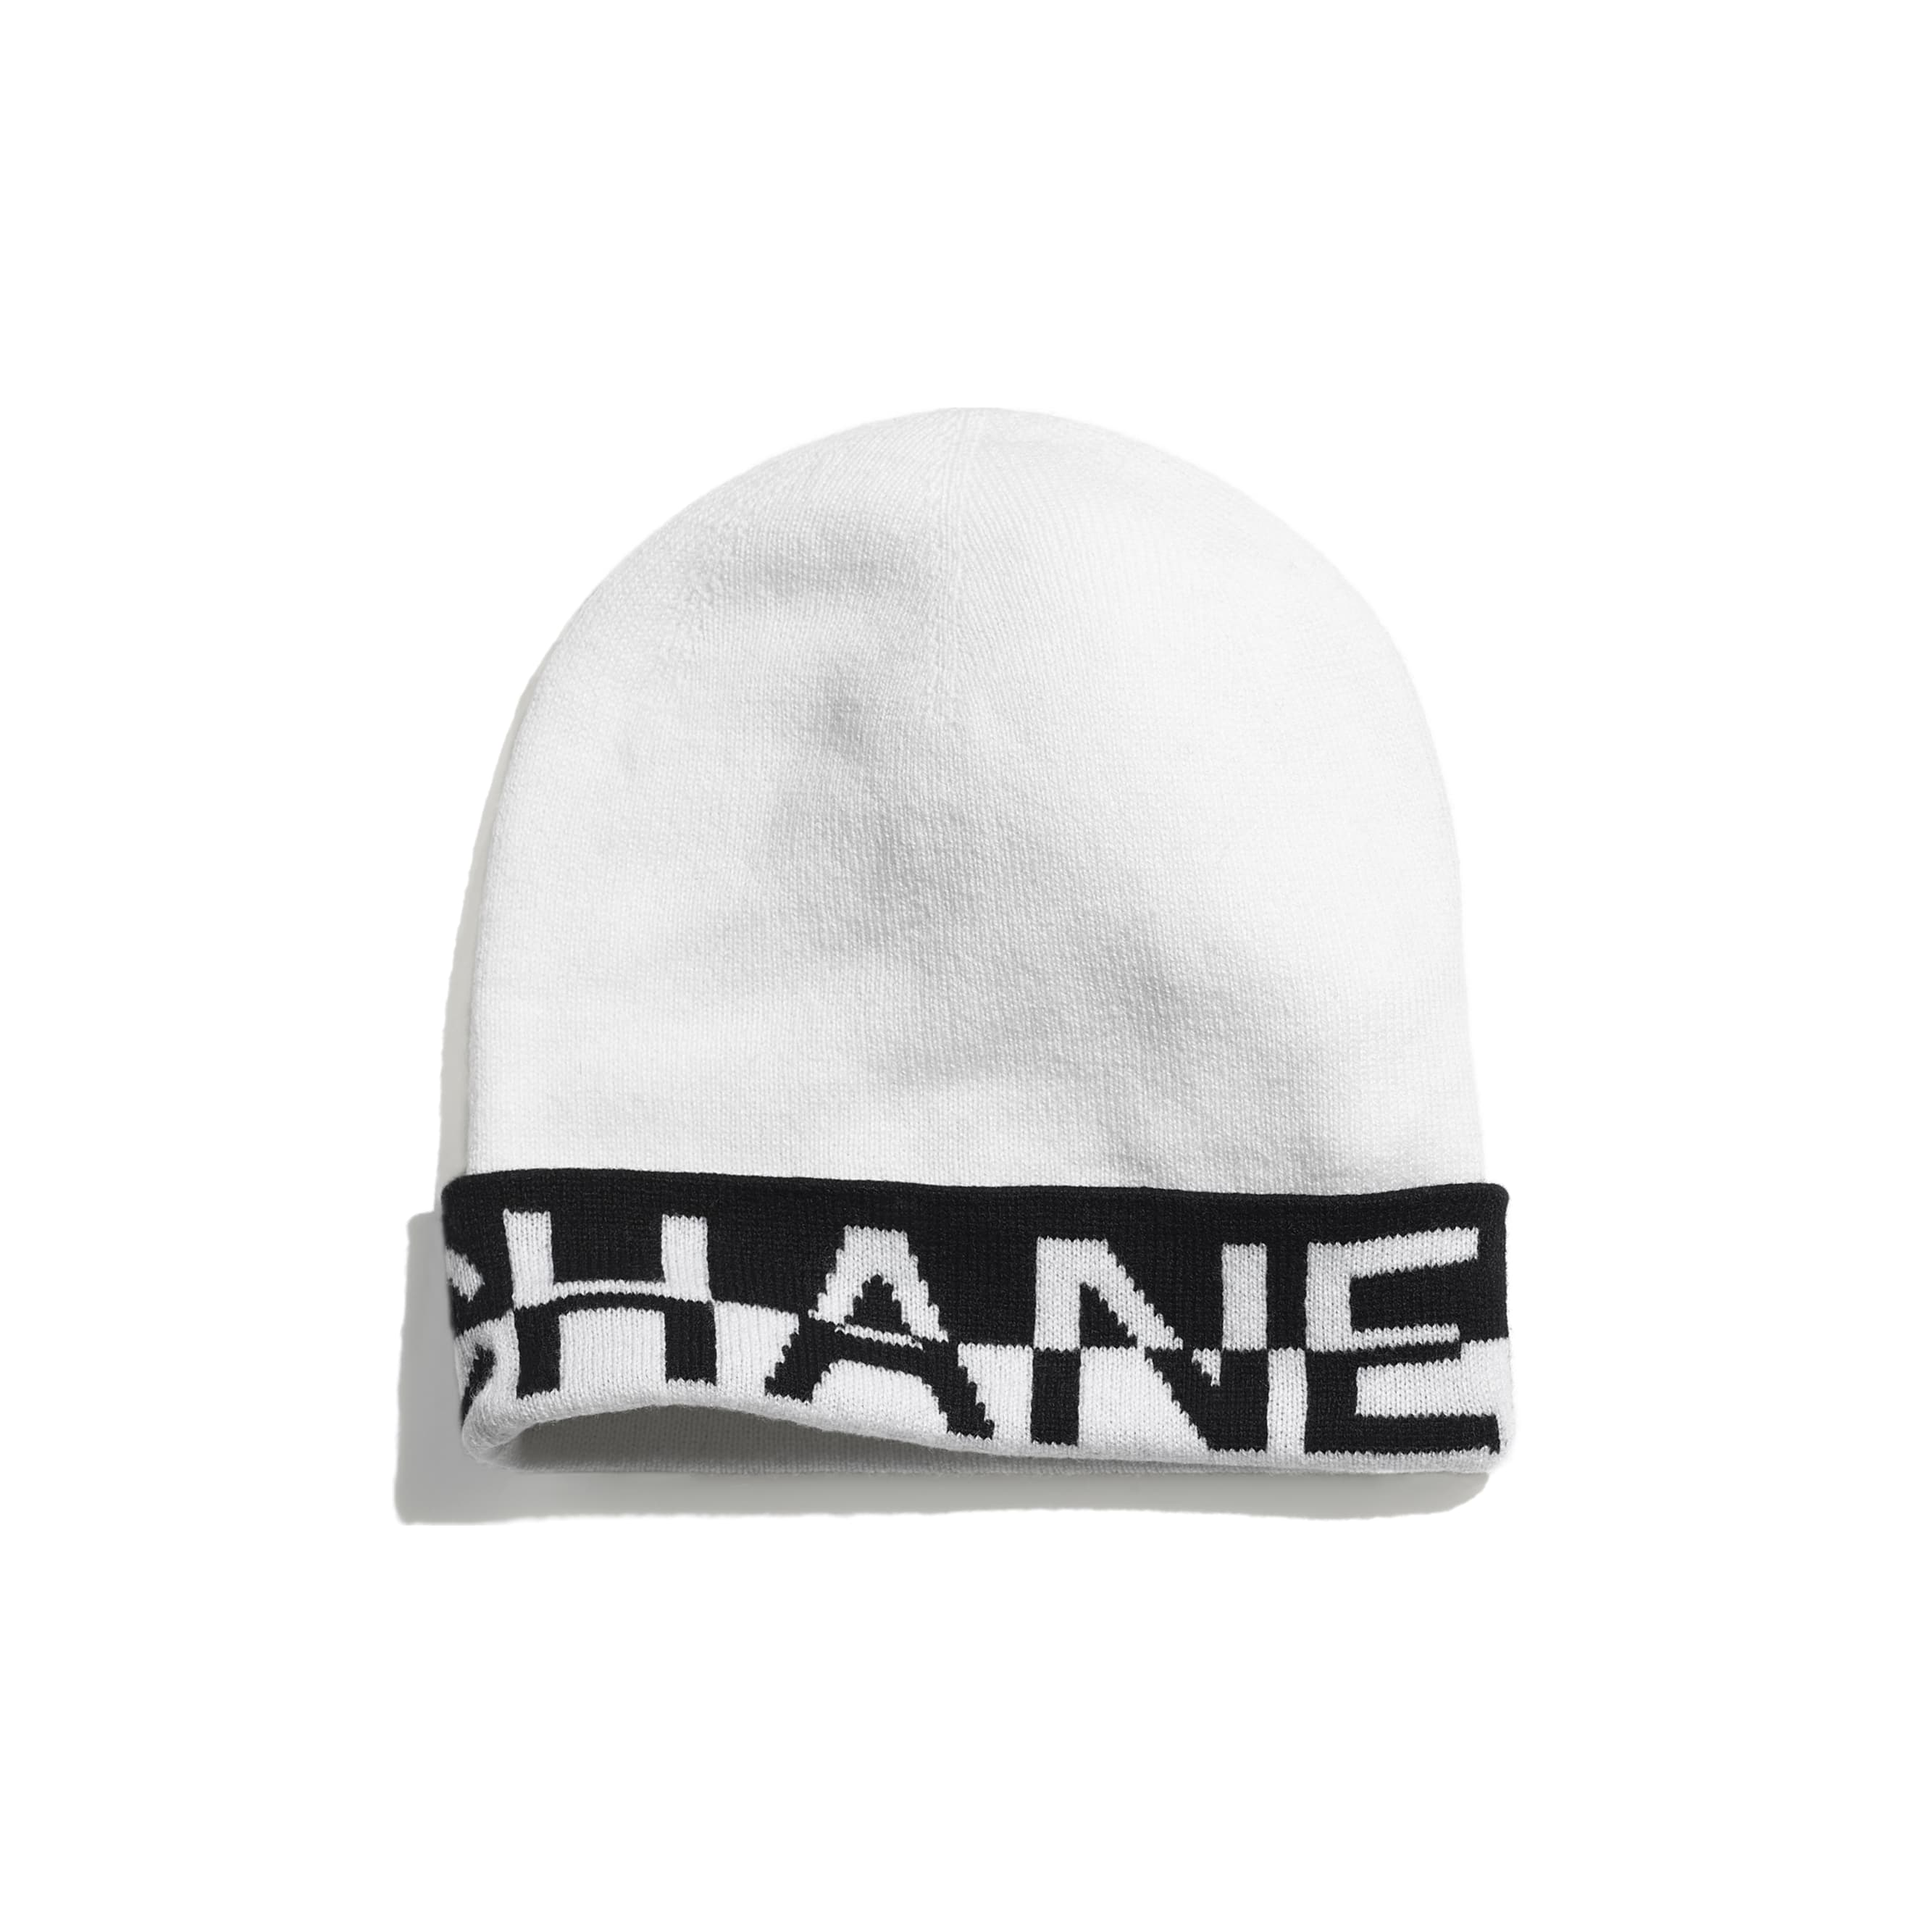 Beanie - White & Black - Cashmere - CHANEL - Default view - see standard sized version